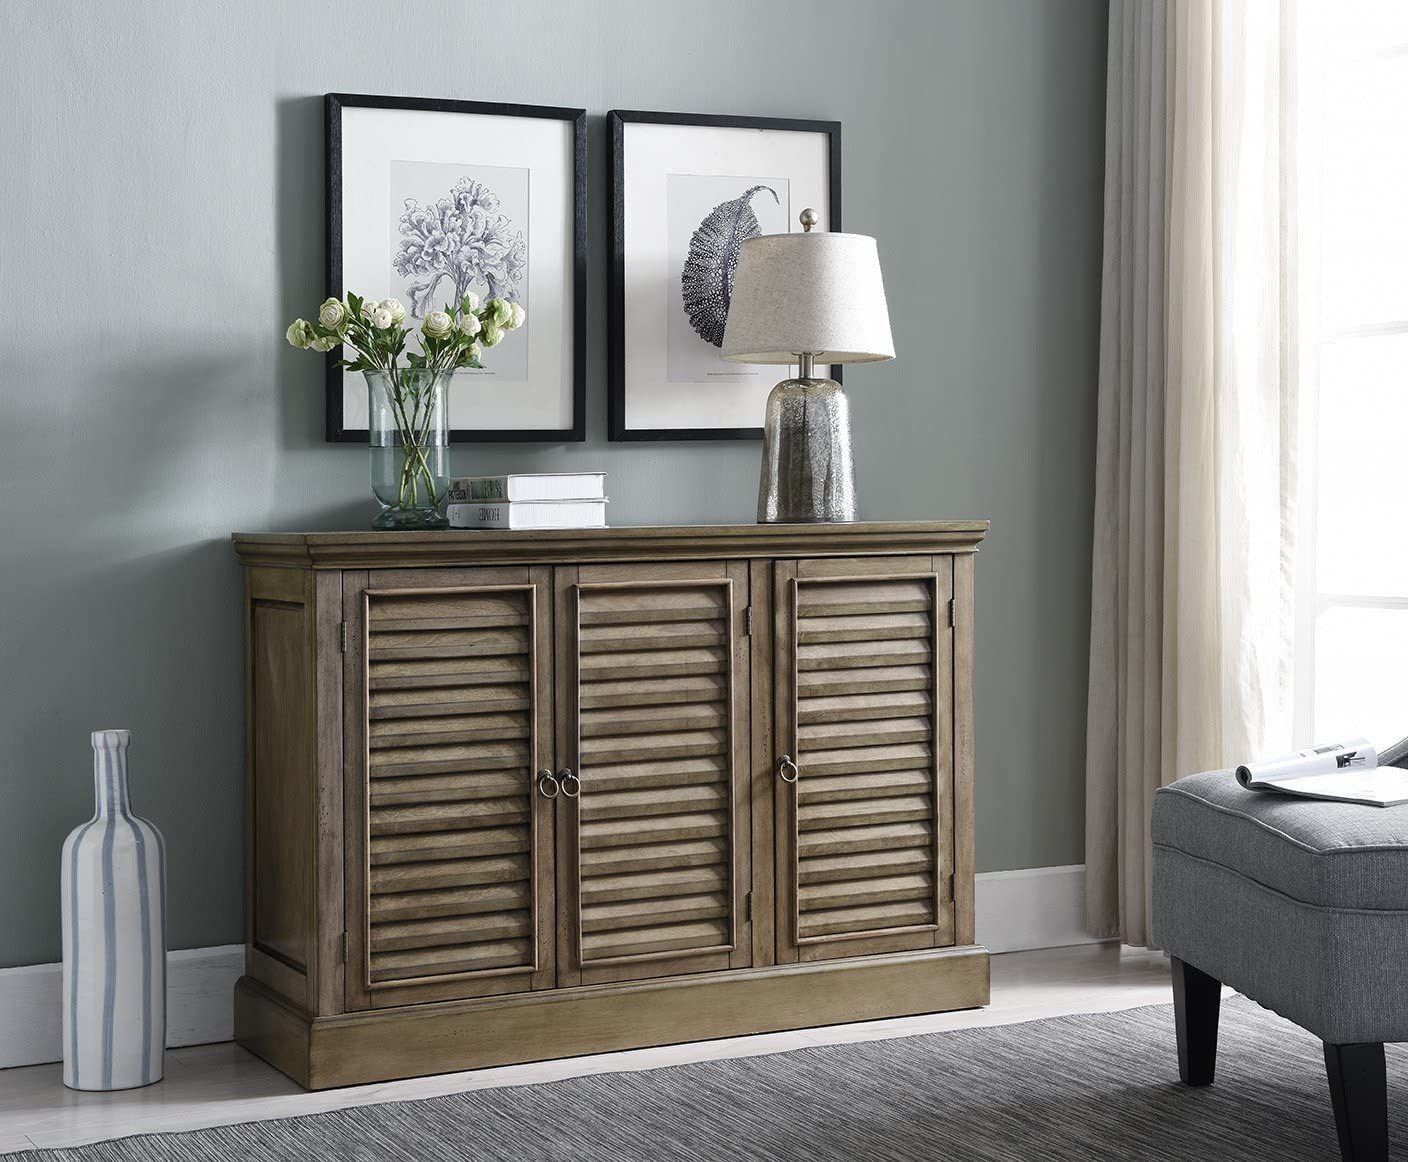 Kings Brand Furniture Antique Wash Rustic Wood Buffet Sideboard Console Table with Storage